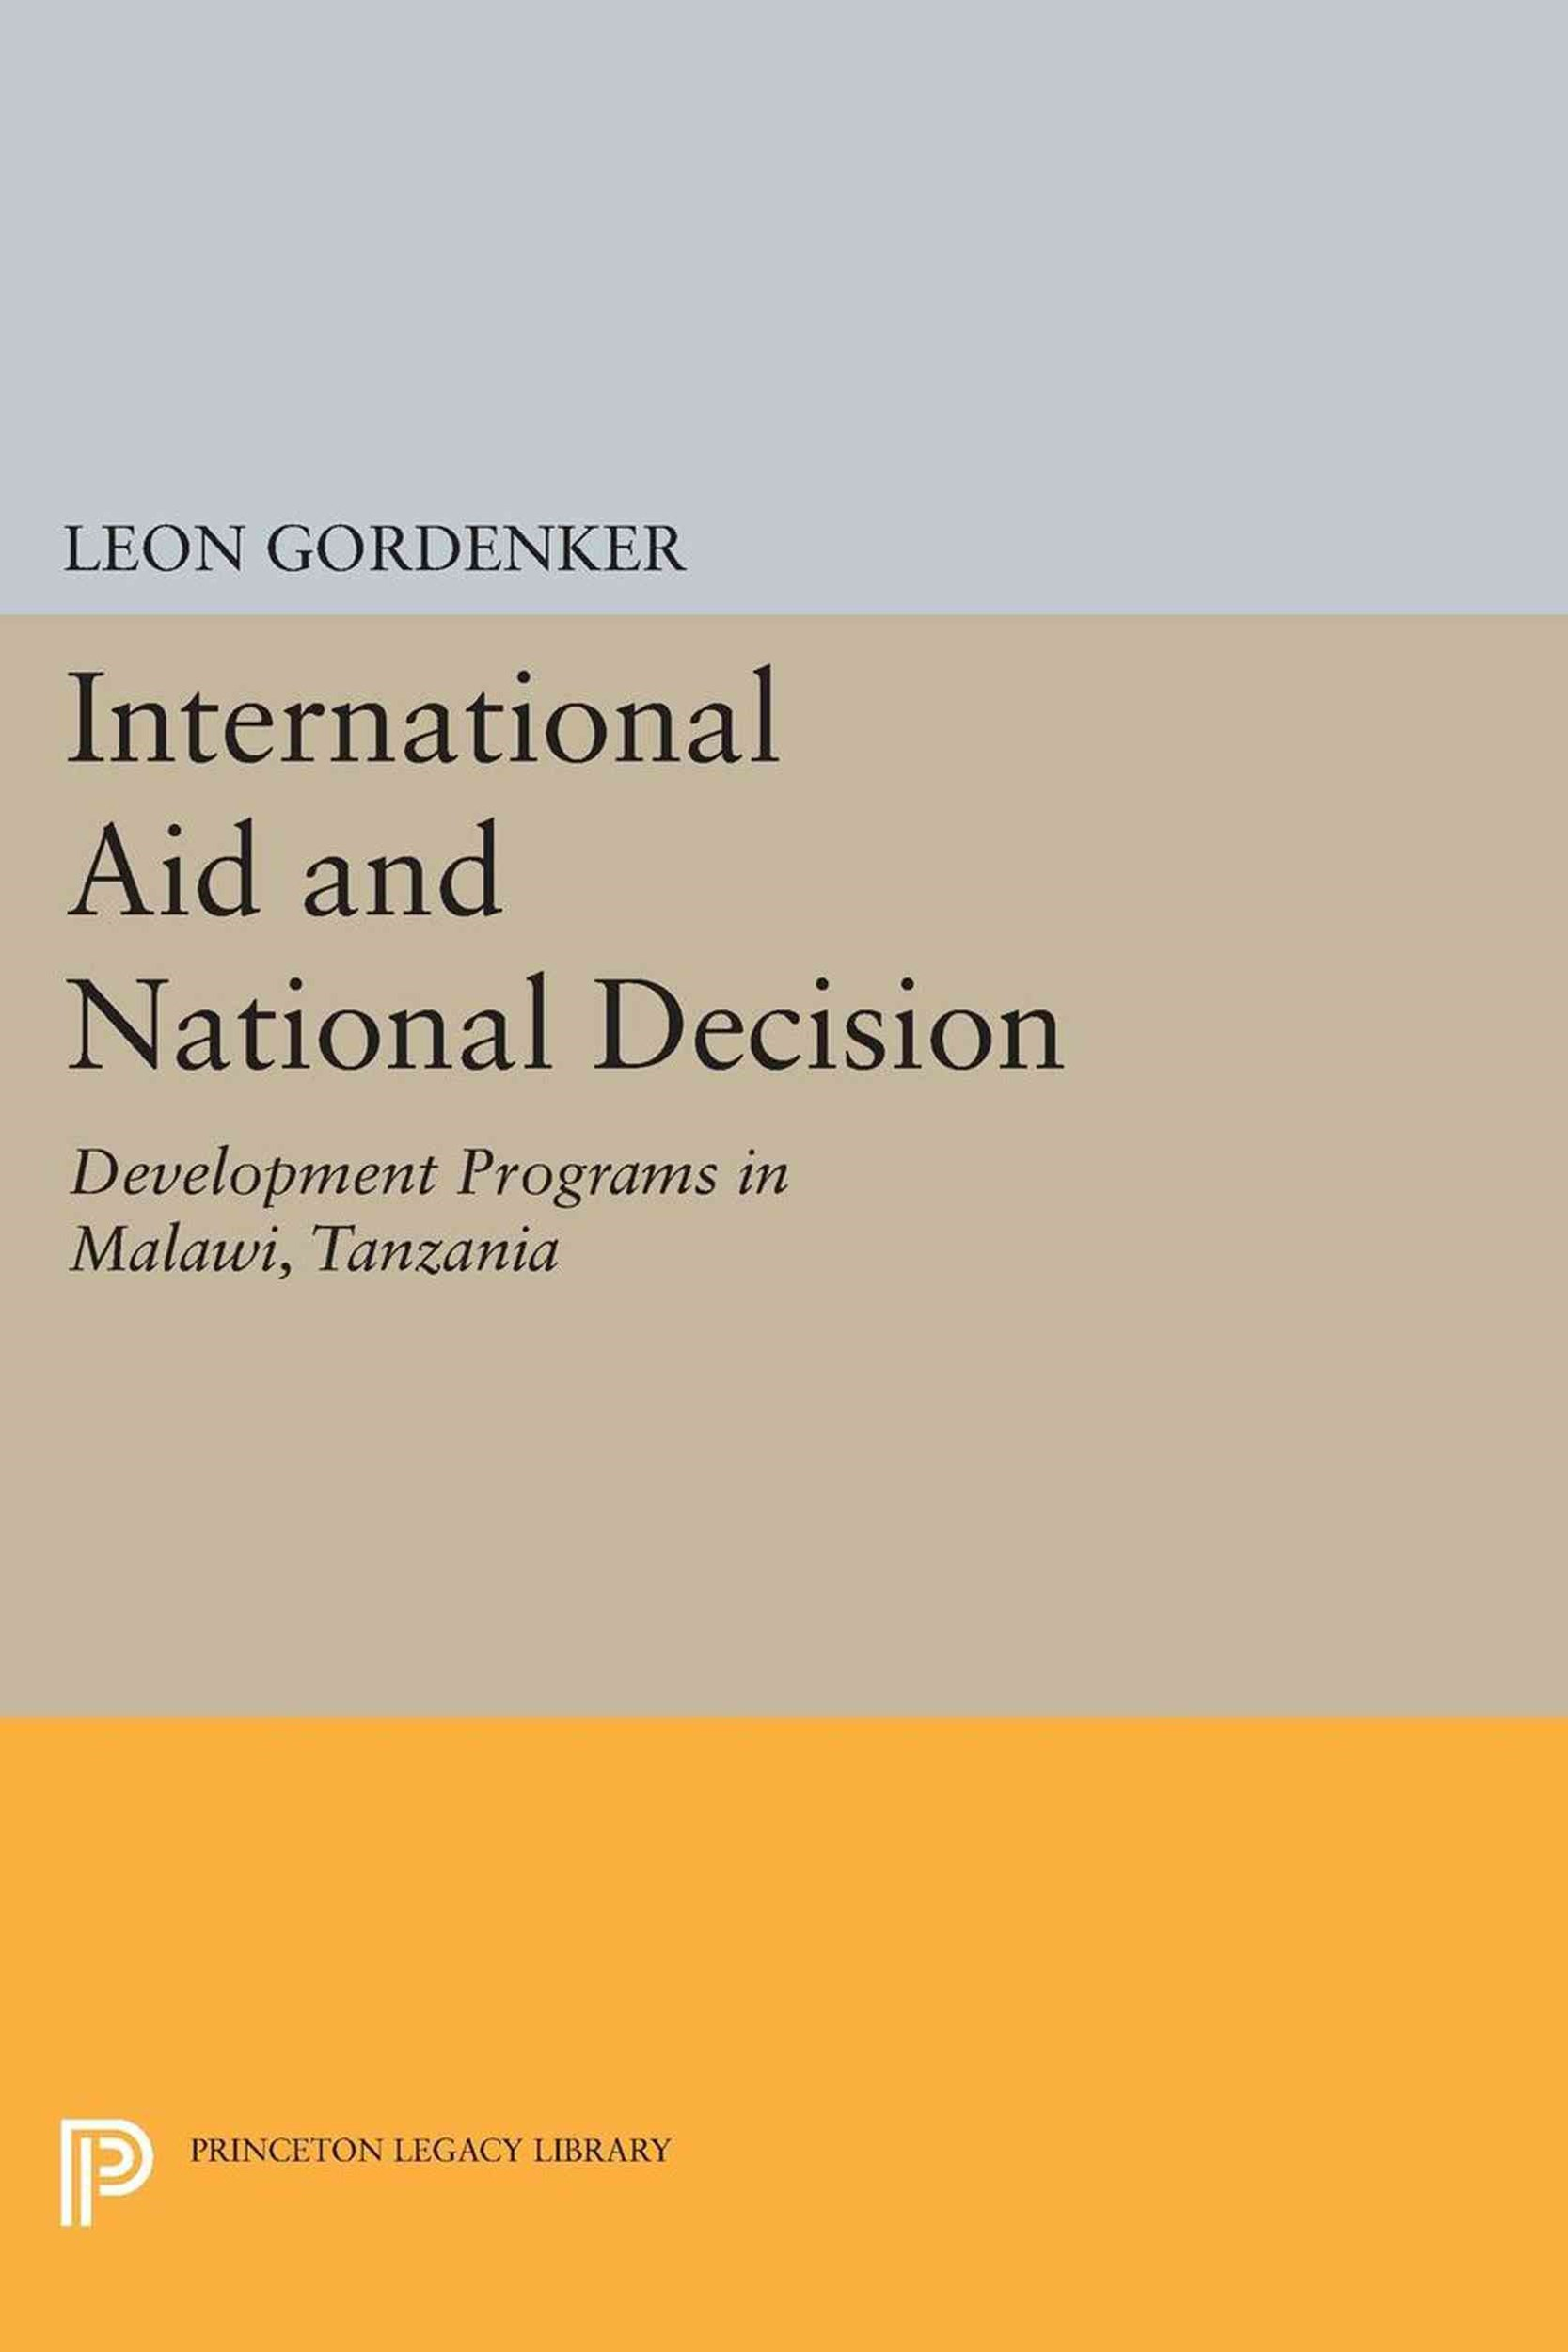 International Aid and National Decision